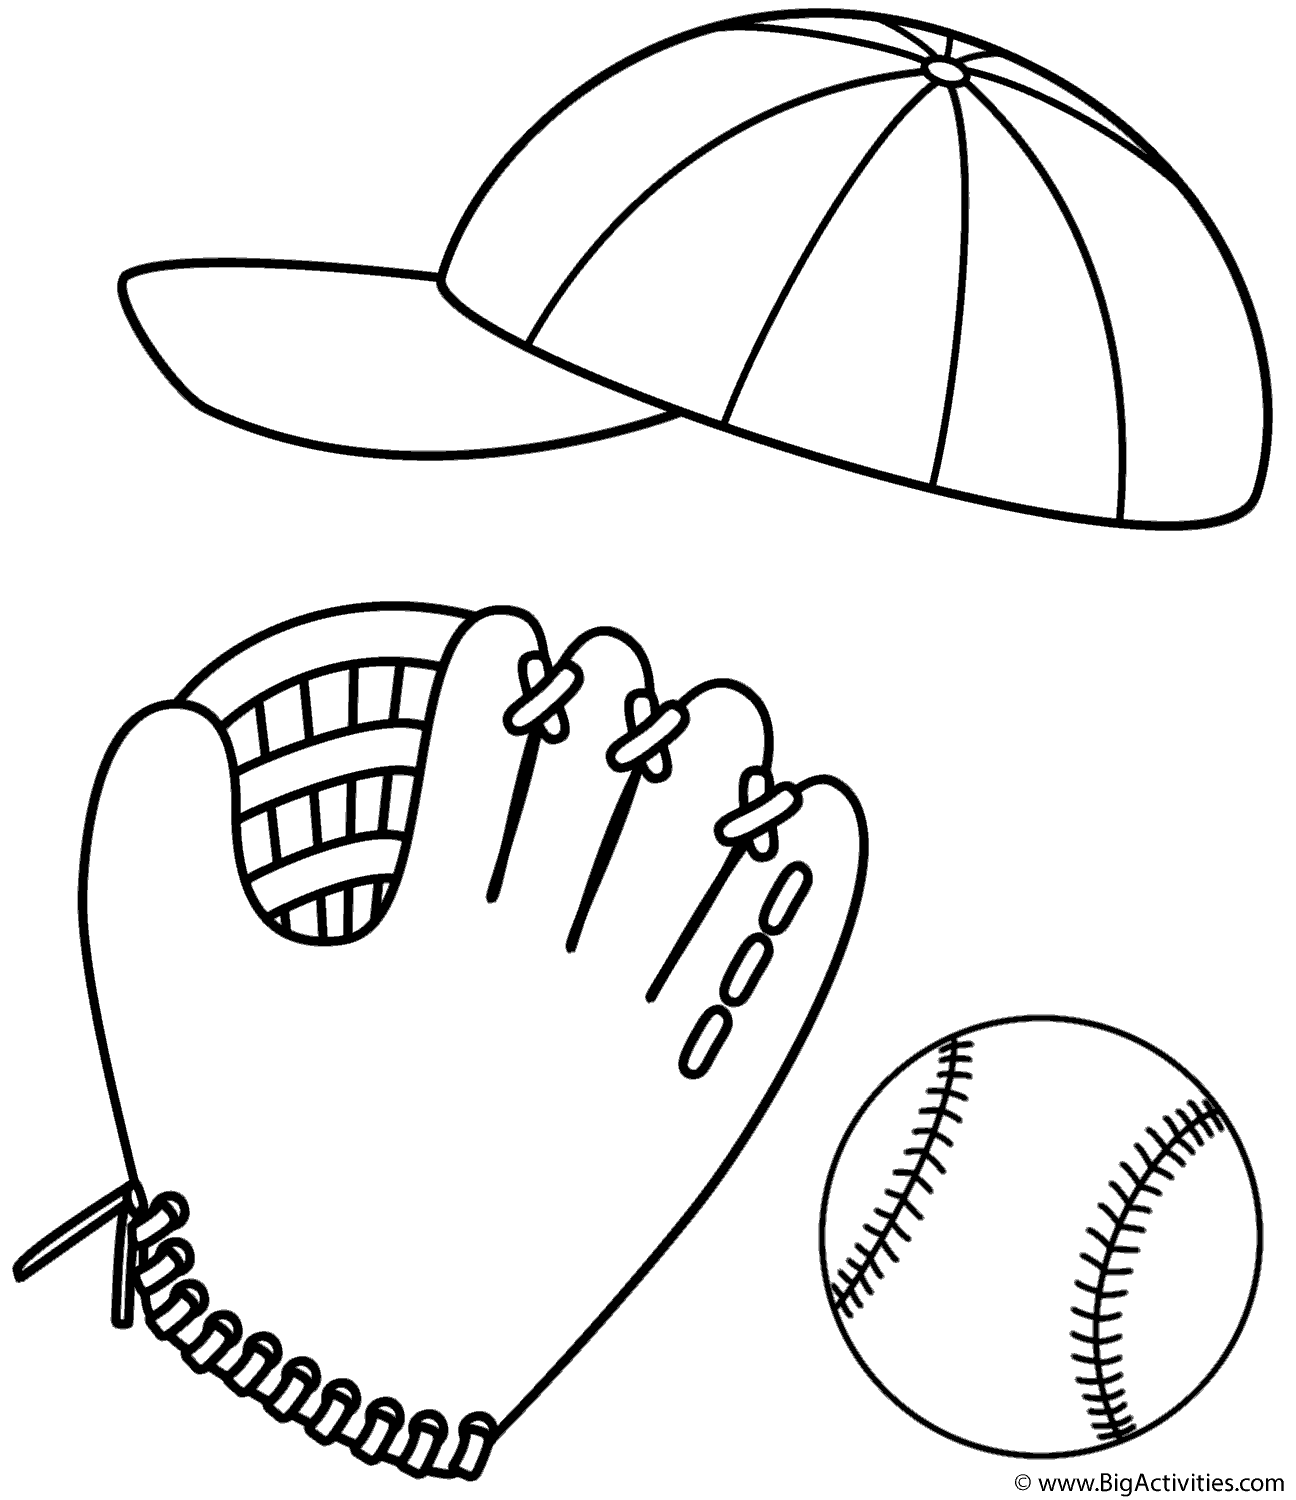 baseball cap glove and ball coloring page sports. Black Bedroom Furniture Sets. Home Design Ideas